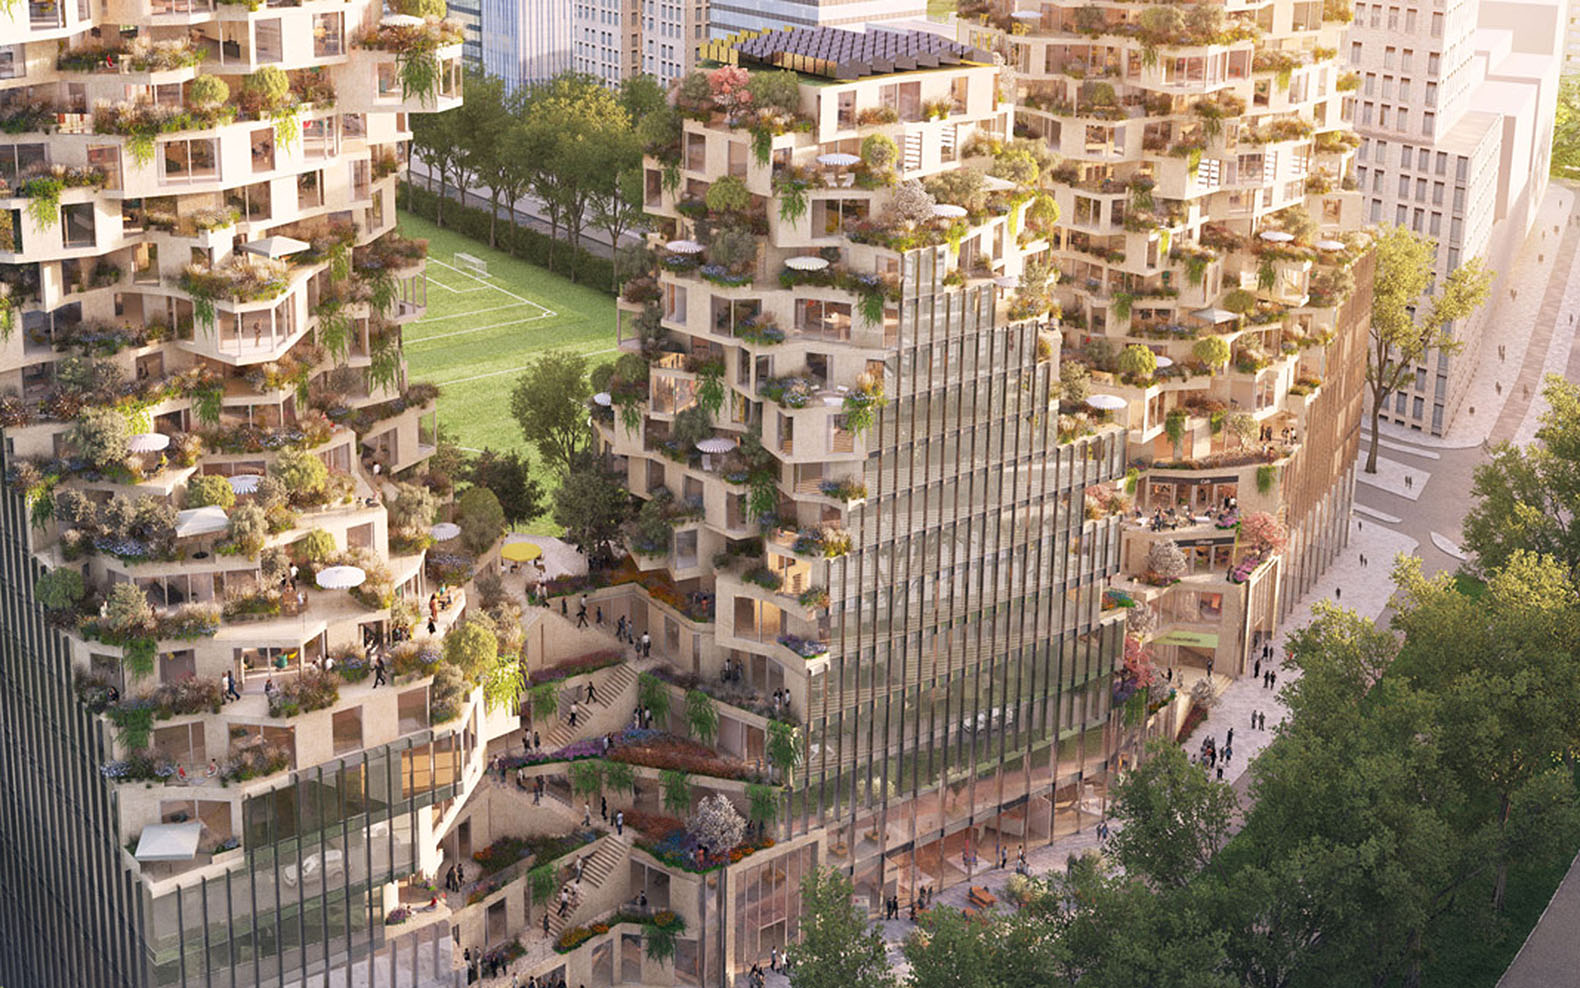 Build A House Mvrdv And Ovg Win Competition To Design Amsterdam S Ravel